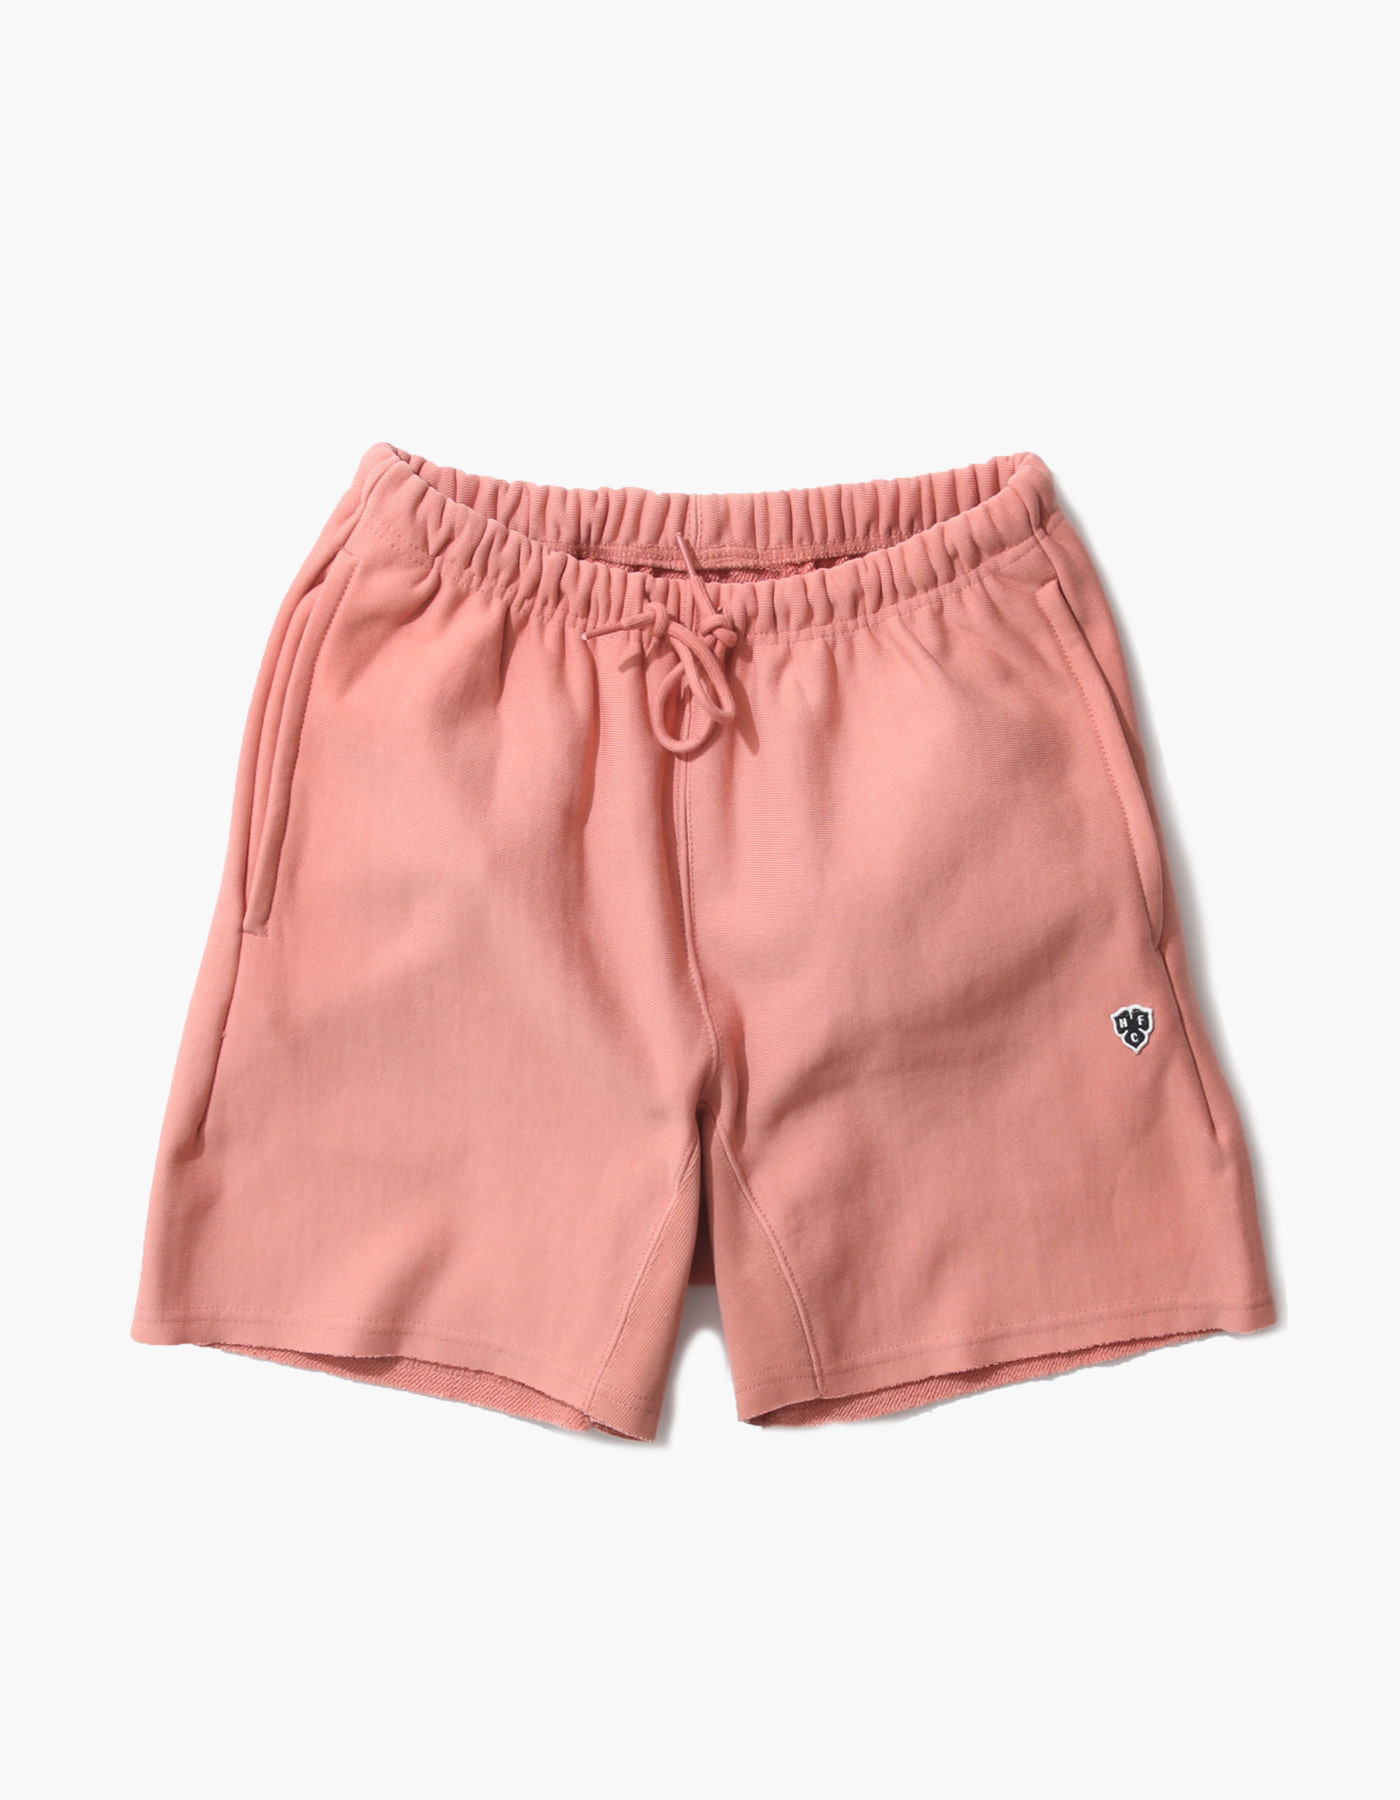 321 GYM SHORTS / MAROON